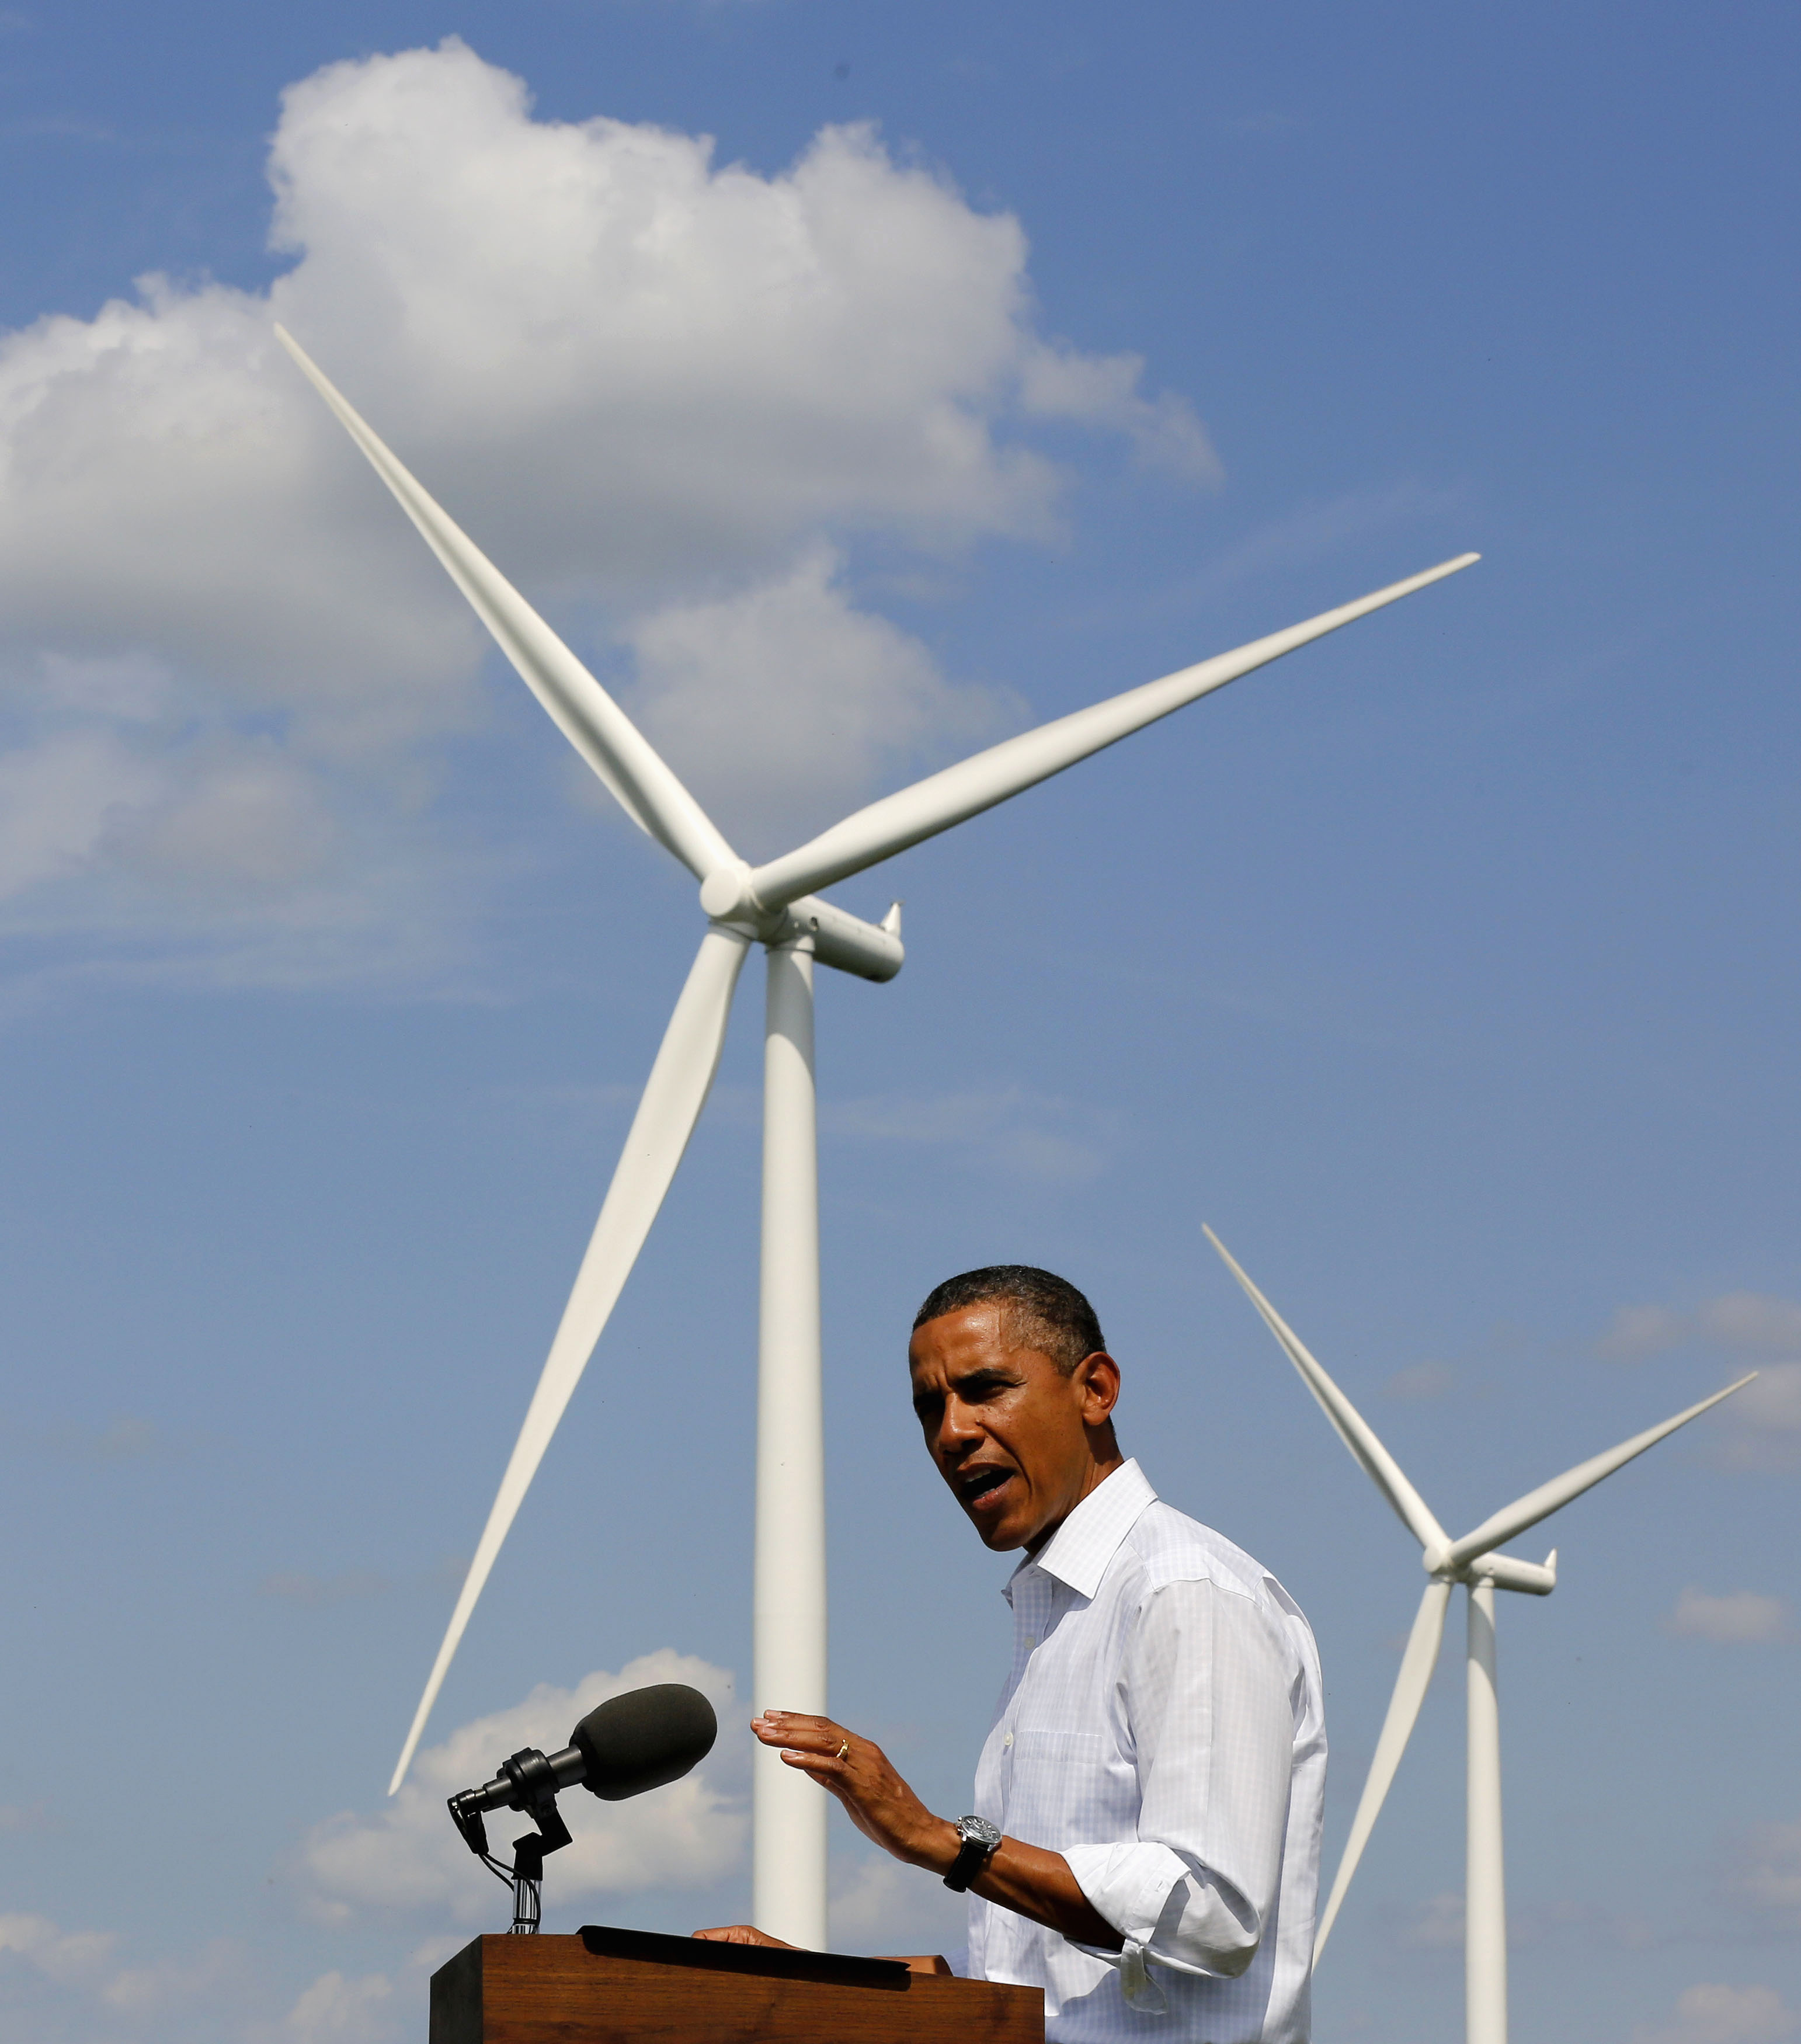 http://www.evwind.es/wp-content/uploads/2012/08/obama-wind-energy.jpg